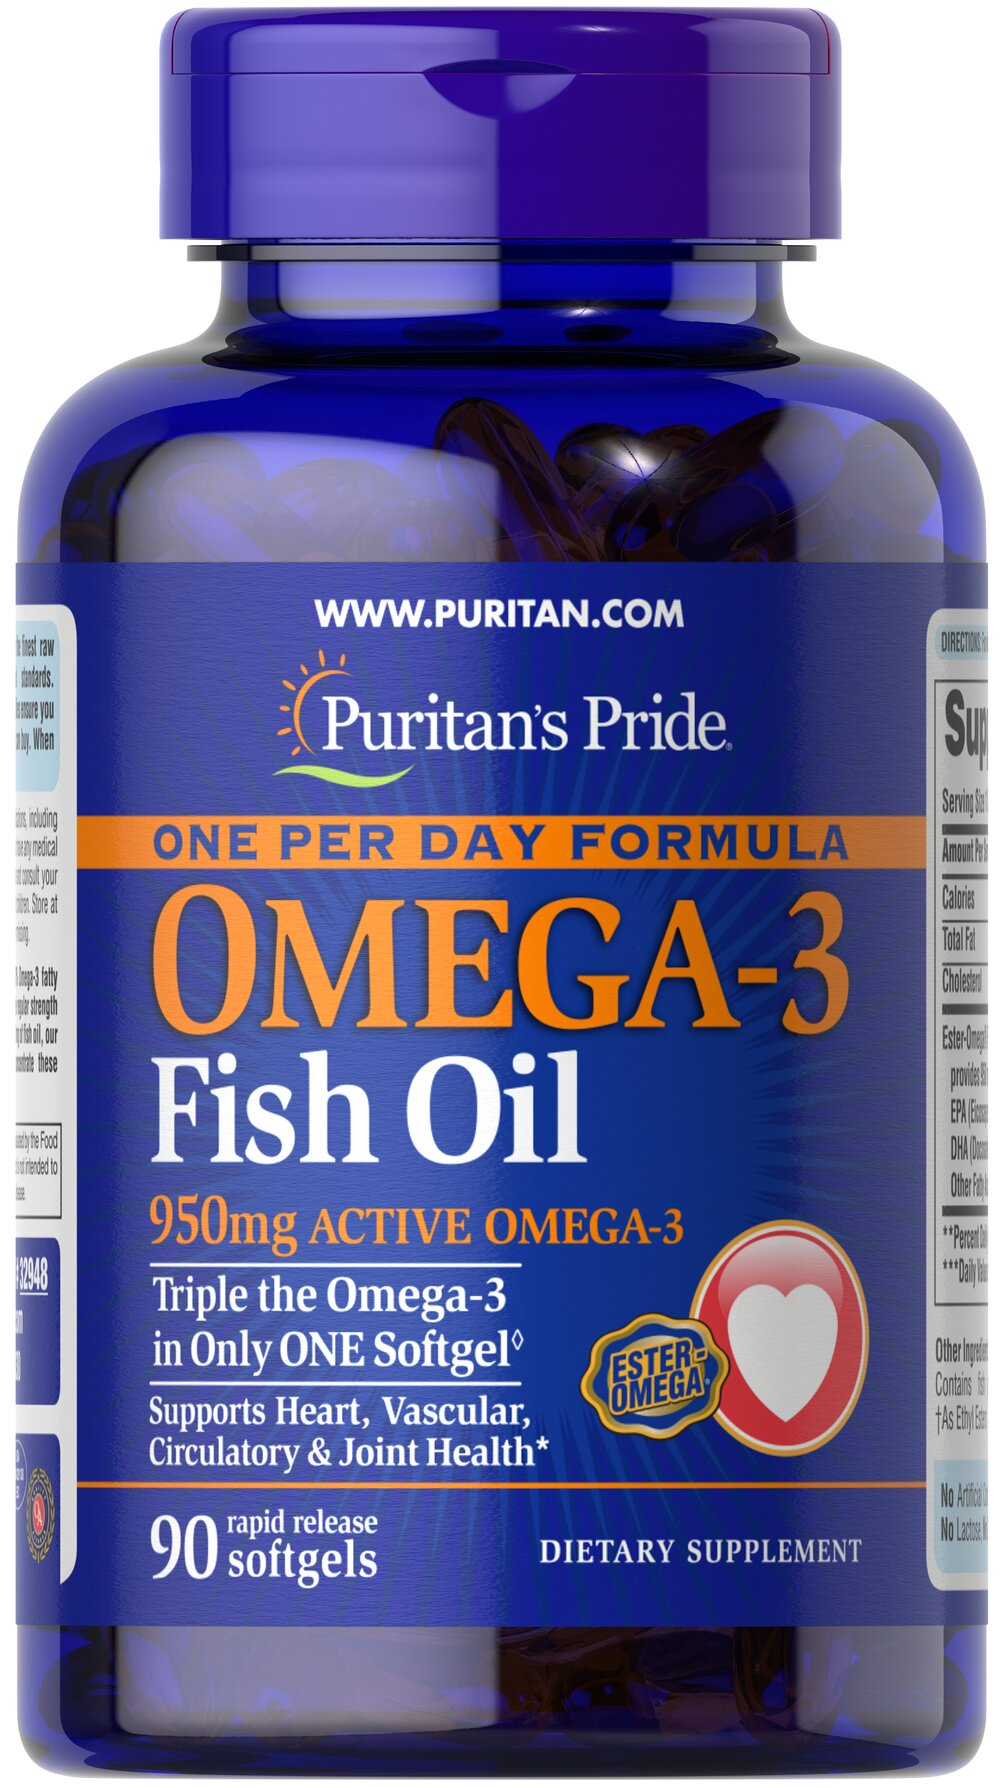 One Per Day Omega-3 Fish Oil 1360 mg (950 mg Active Omega-3)  90 Softgels 950 mg $23.99